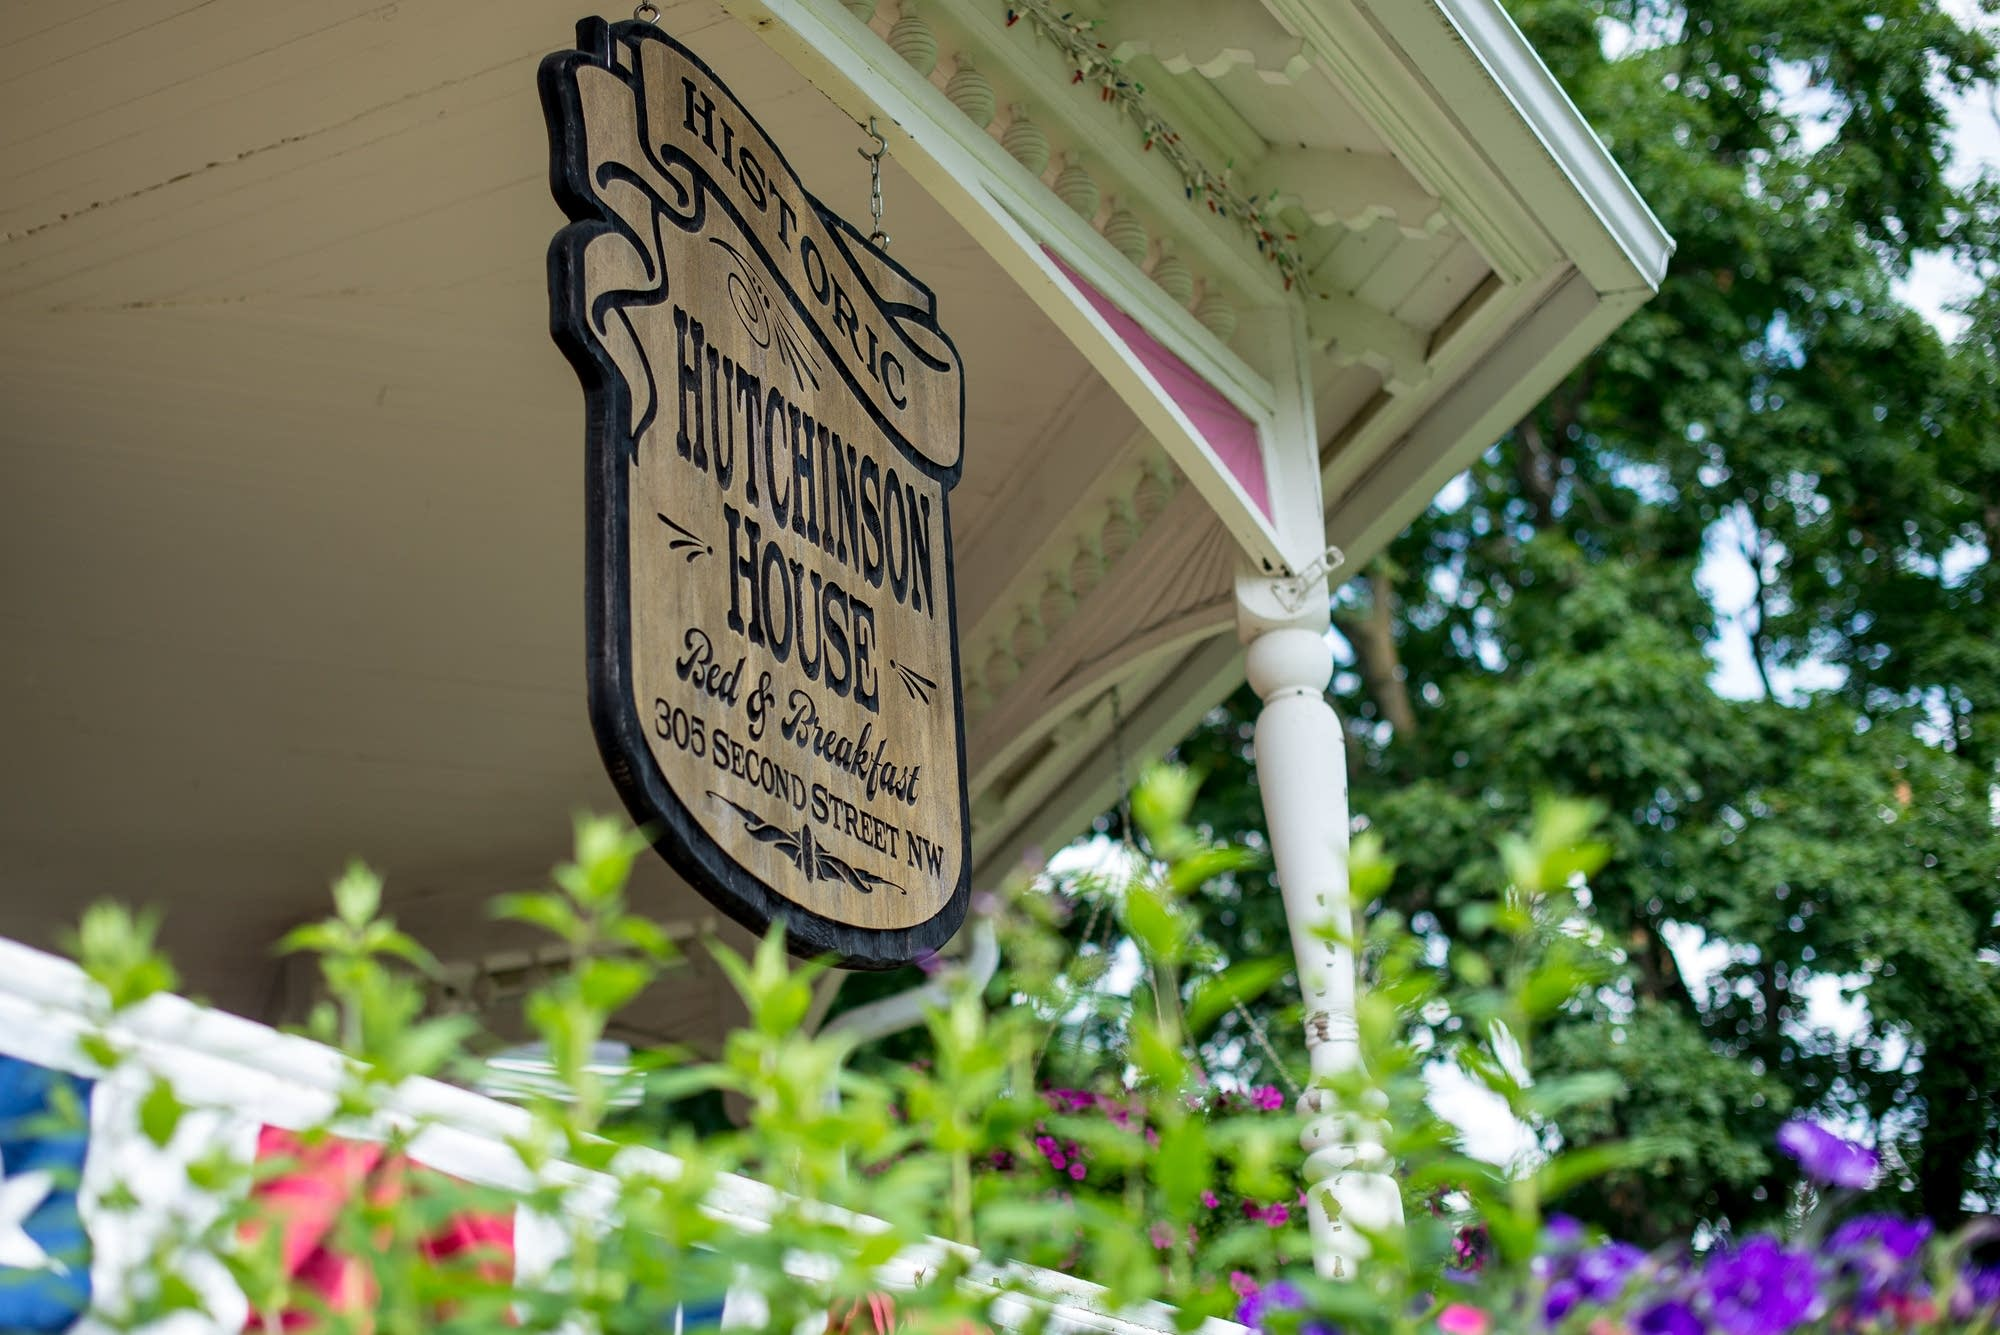 The Historic Hutchinson House Bed & Breakfast sign hangs on the porch.